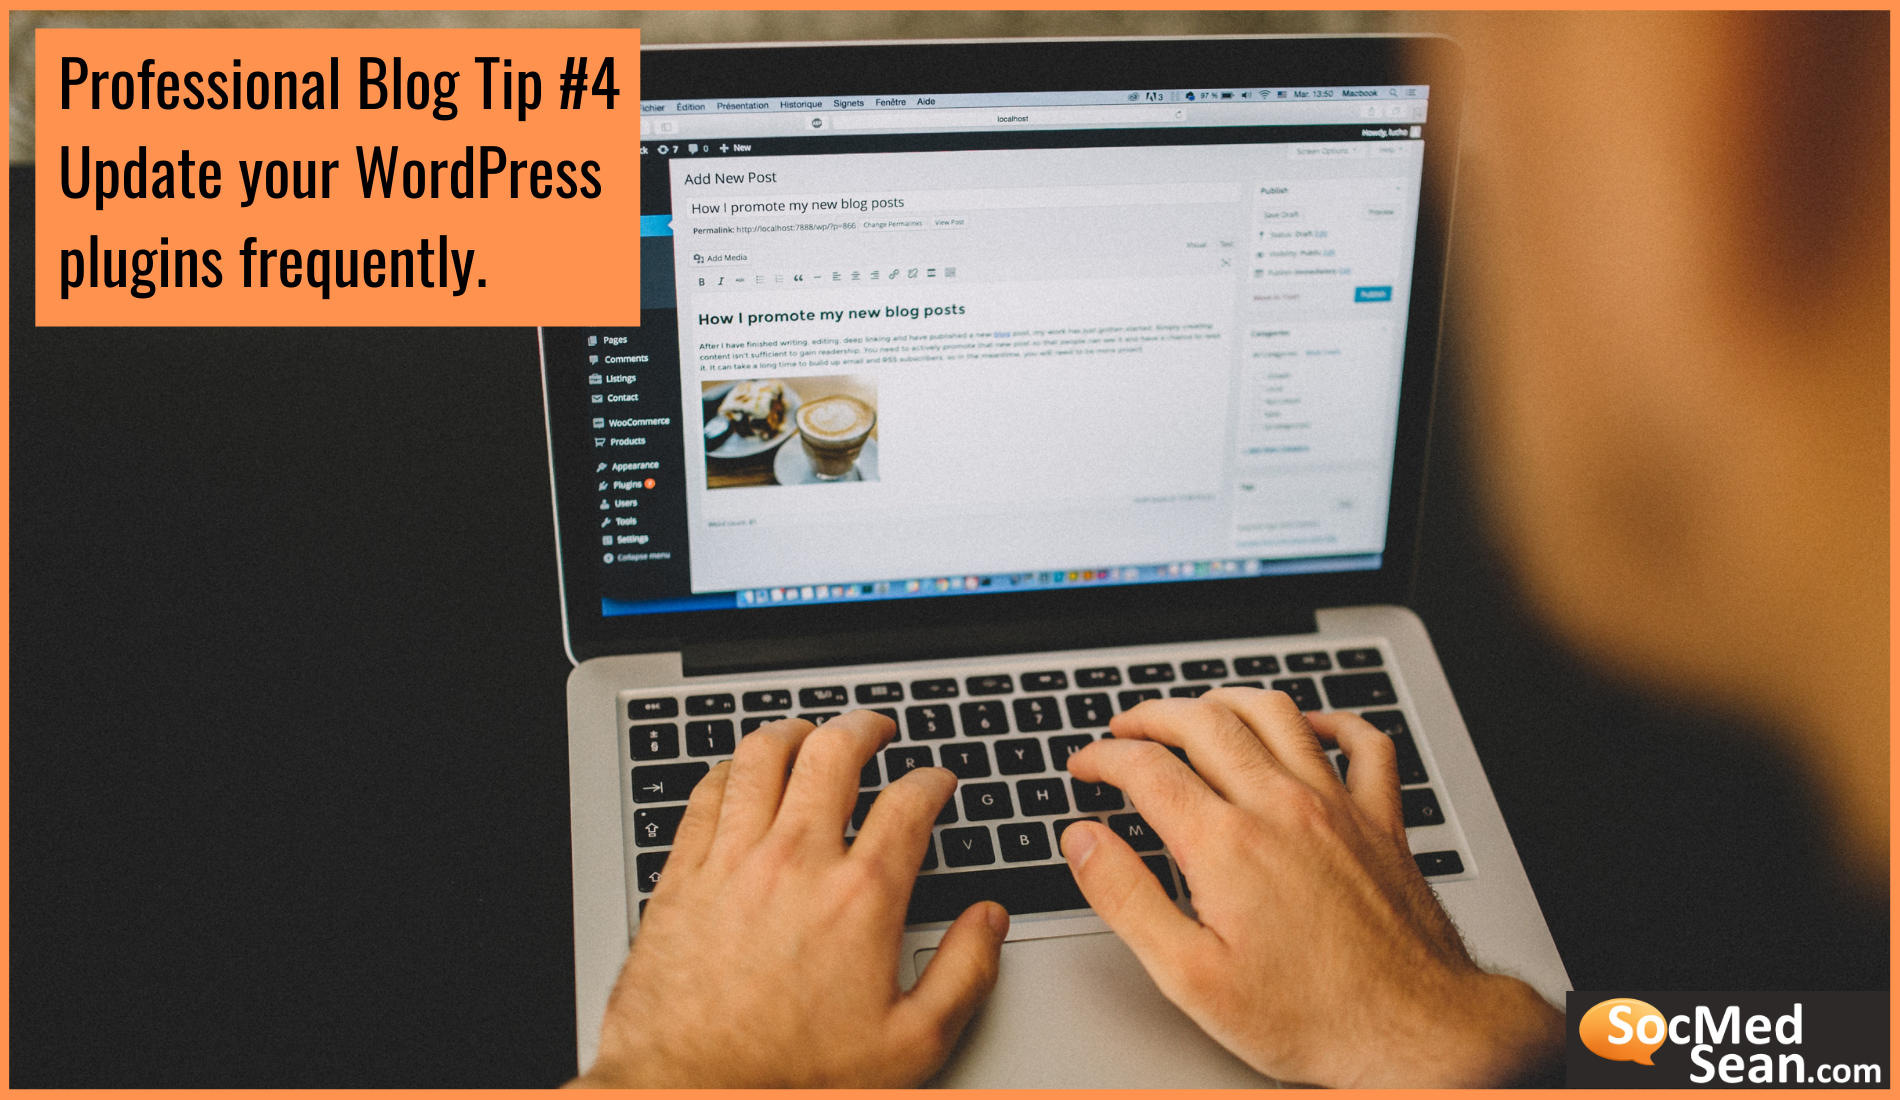 Blogging Tip - Update your WordPress plugins frequently